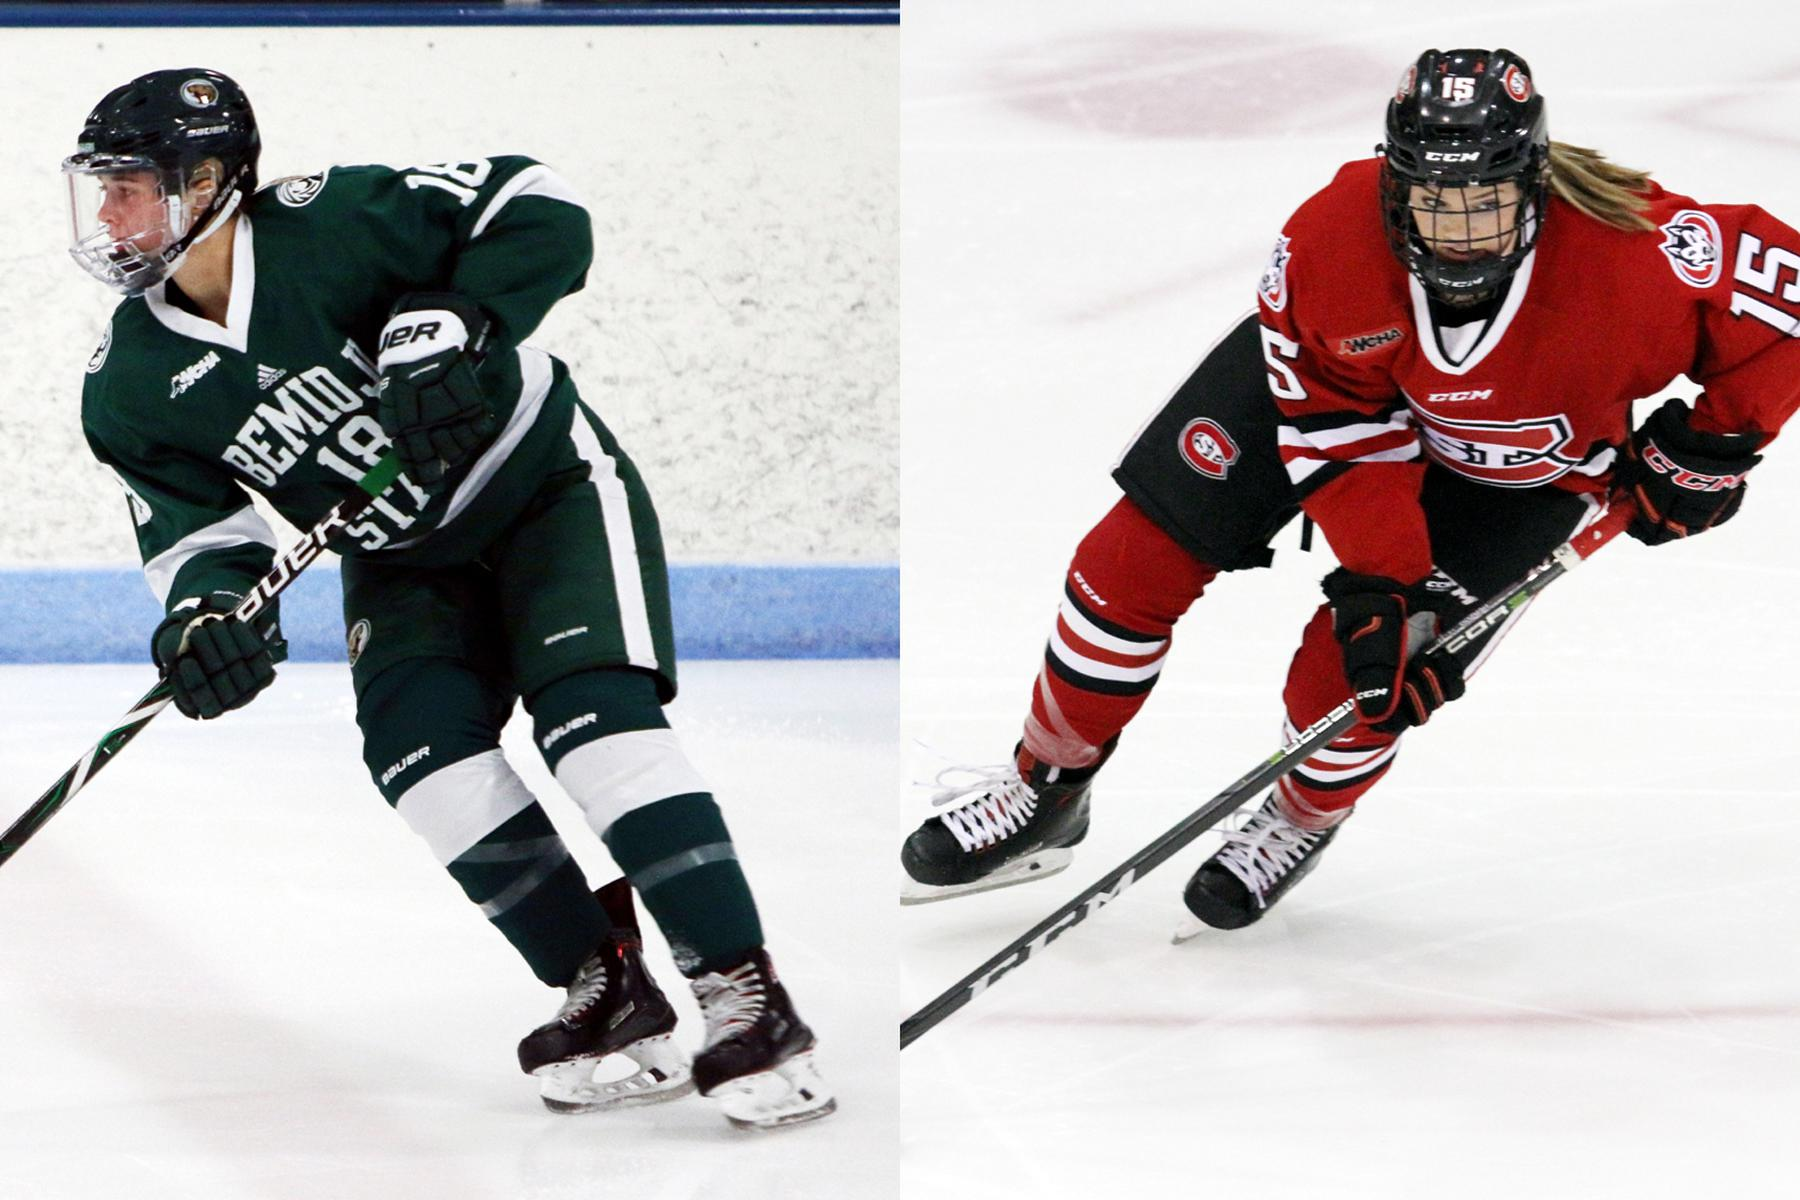 U.S. Hockey Hall Of Fame Women's Face-Off Classic Set For Tuesday In Brainerd